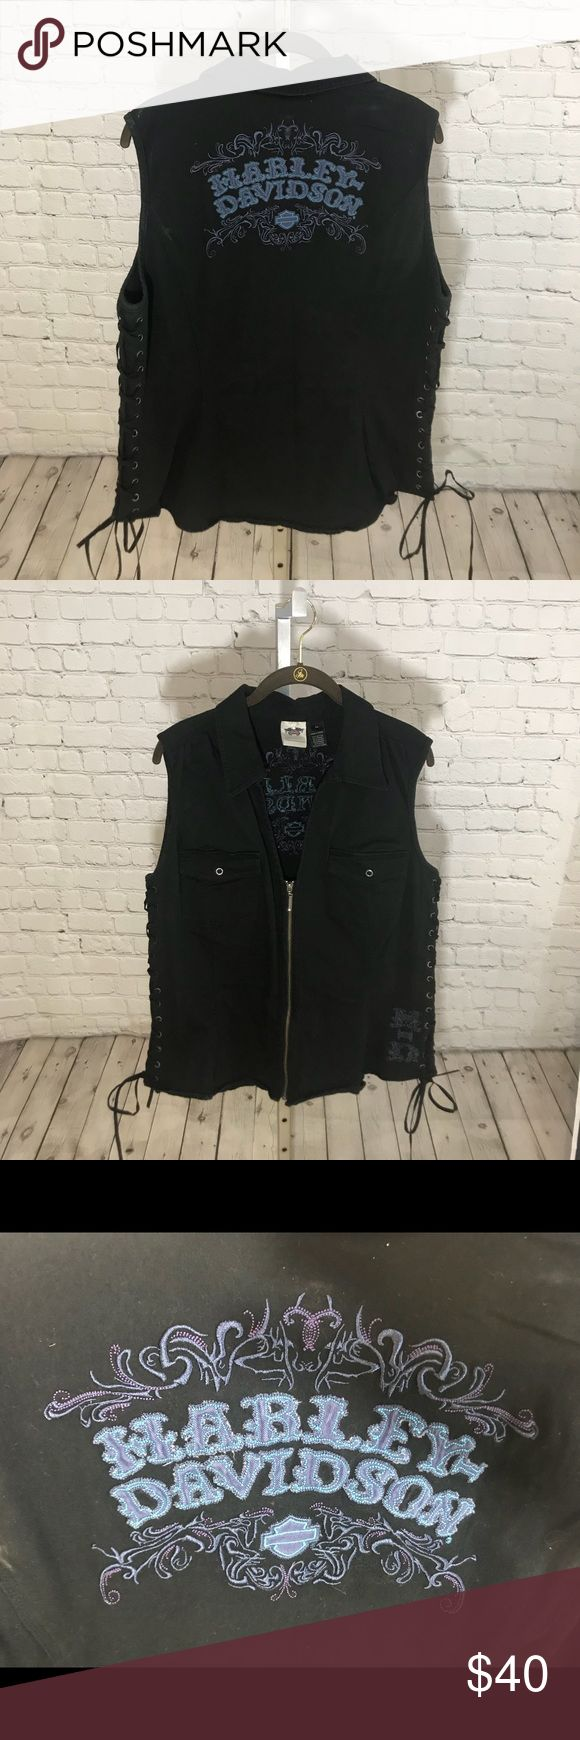 Harley Davidson Vest Great piece with lace up sides and embroidered blue and purple emblem. Harley-Davidson Tops